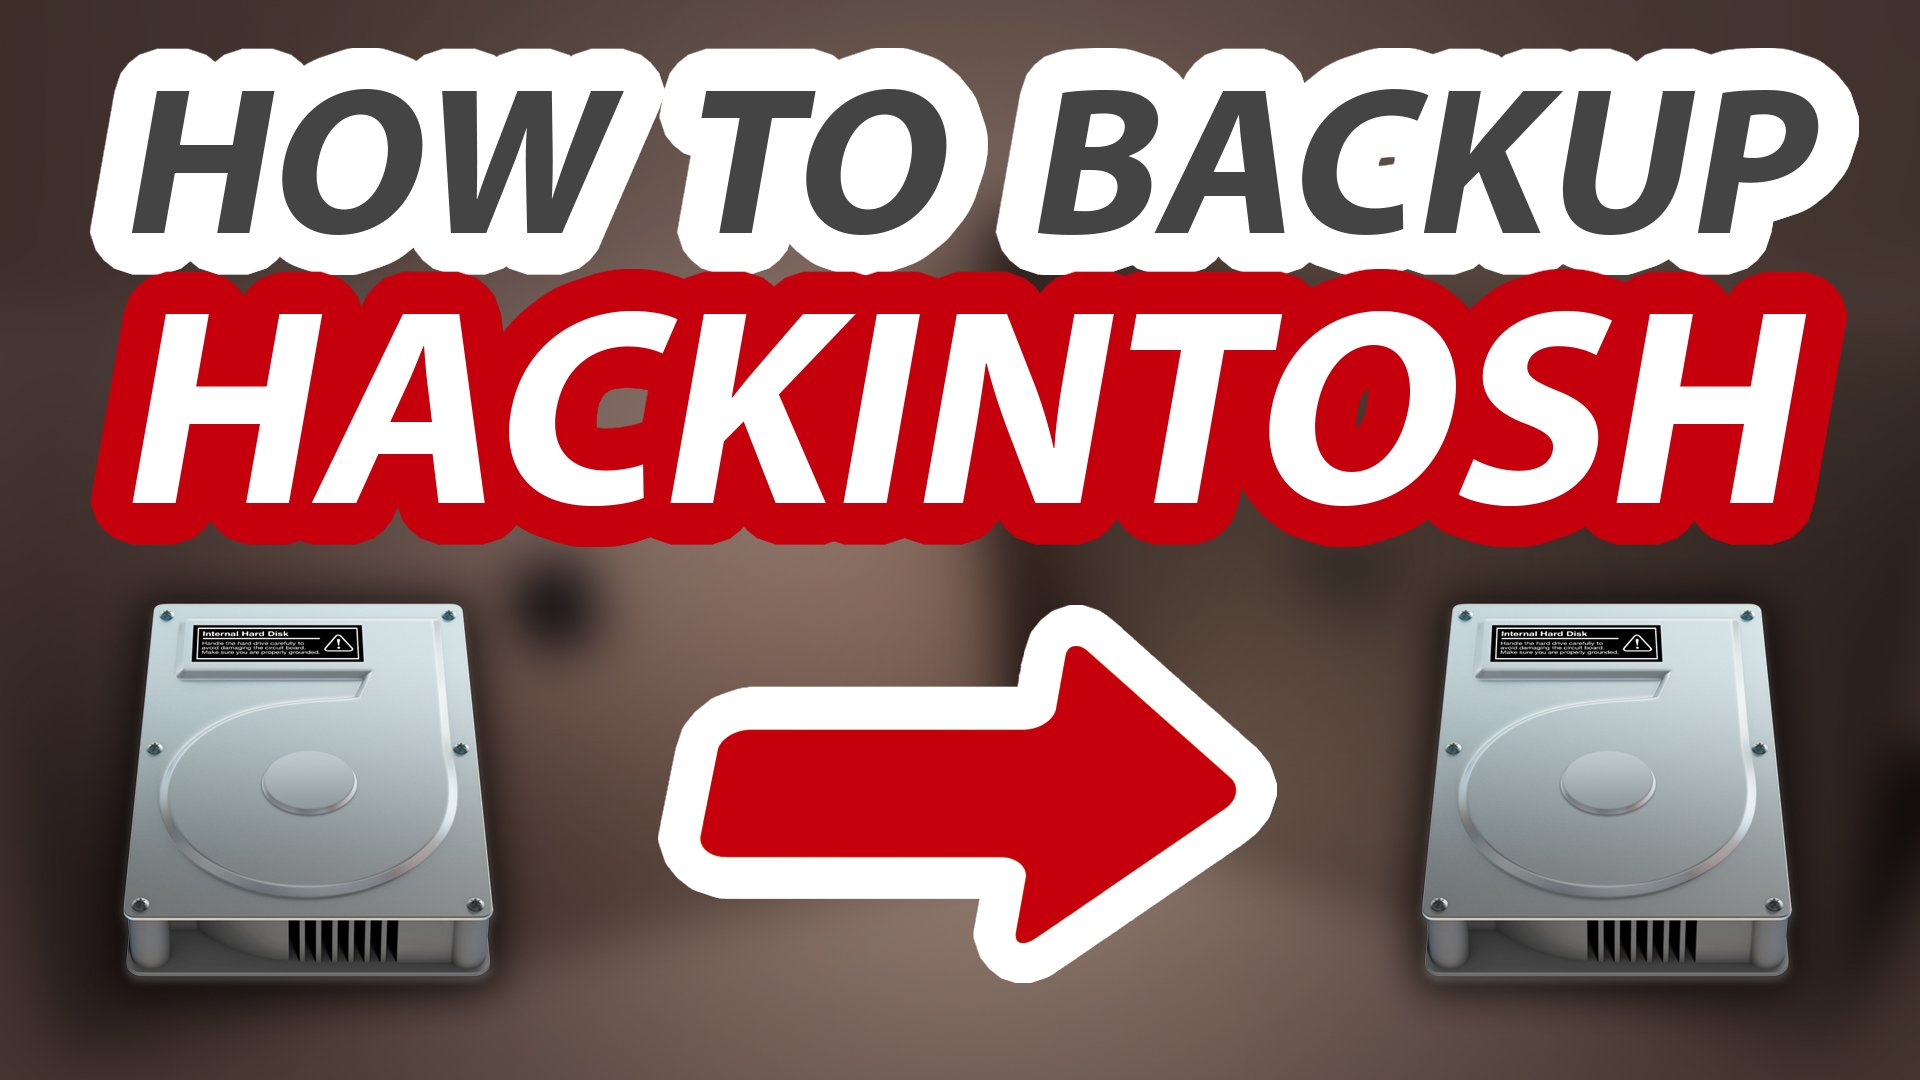 How to backup Hackintosh - Complete Guide - Step by Step Tutorial